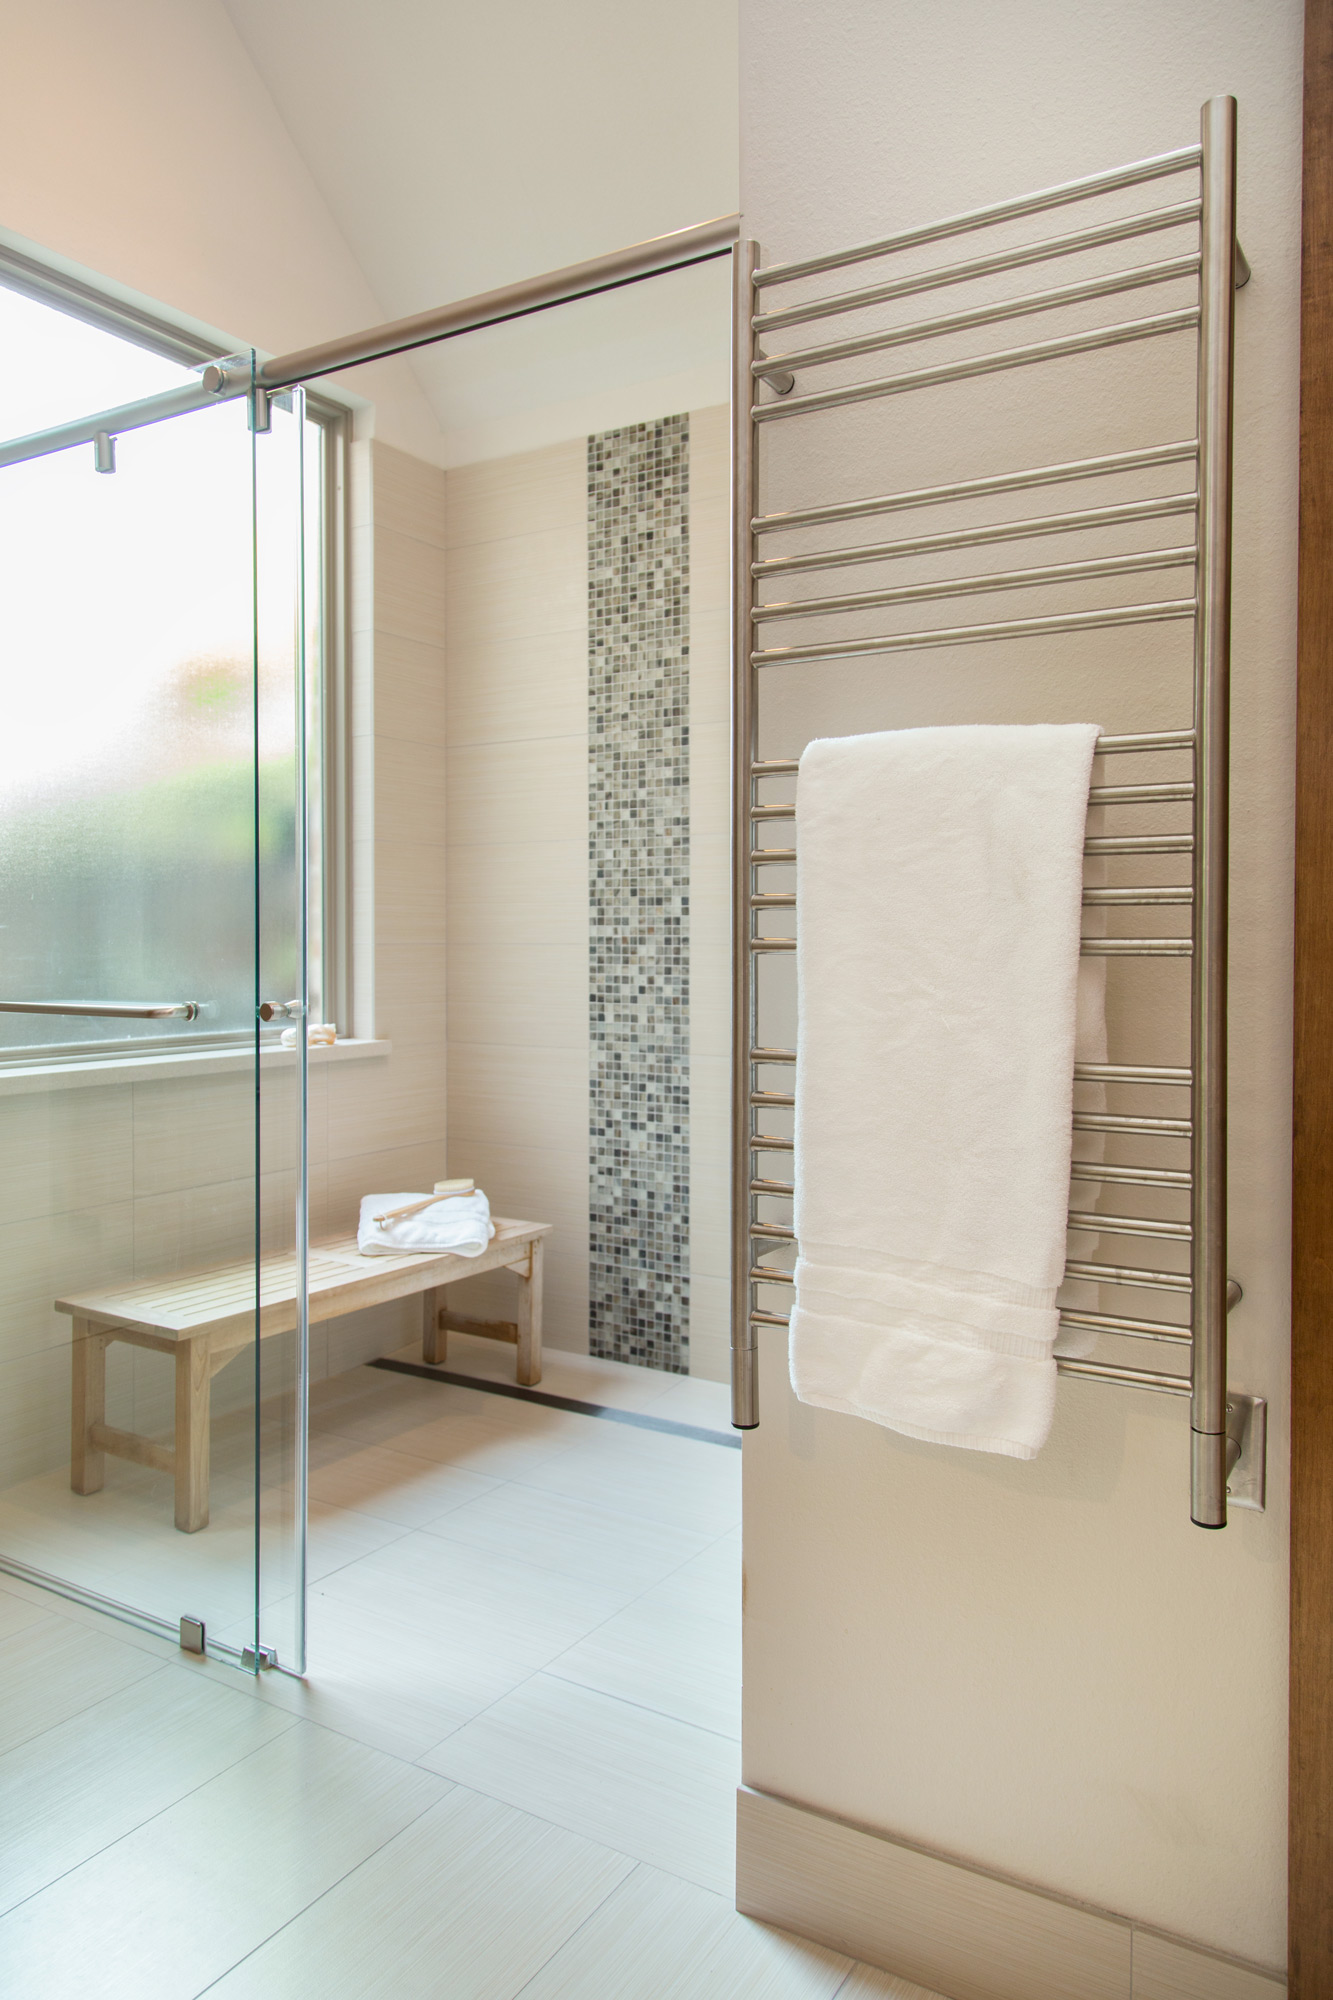 Shower with no curb and linear drain for accessibility  | Carla Aston, Designer, Photographer, Tori Aston